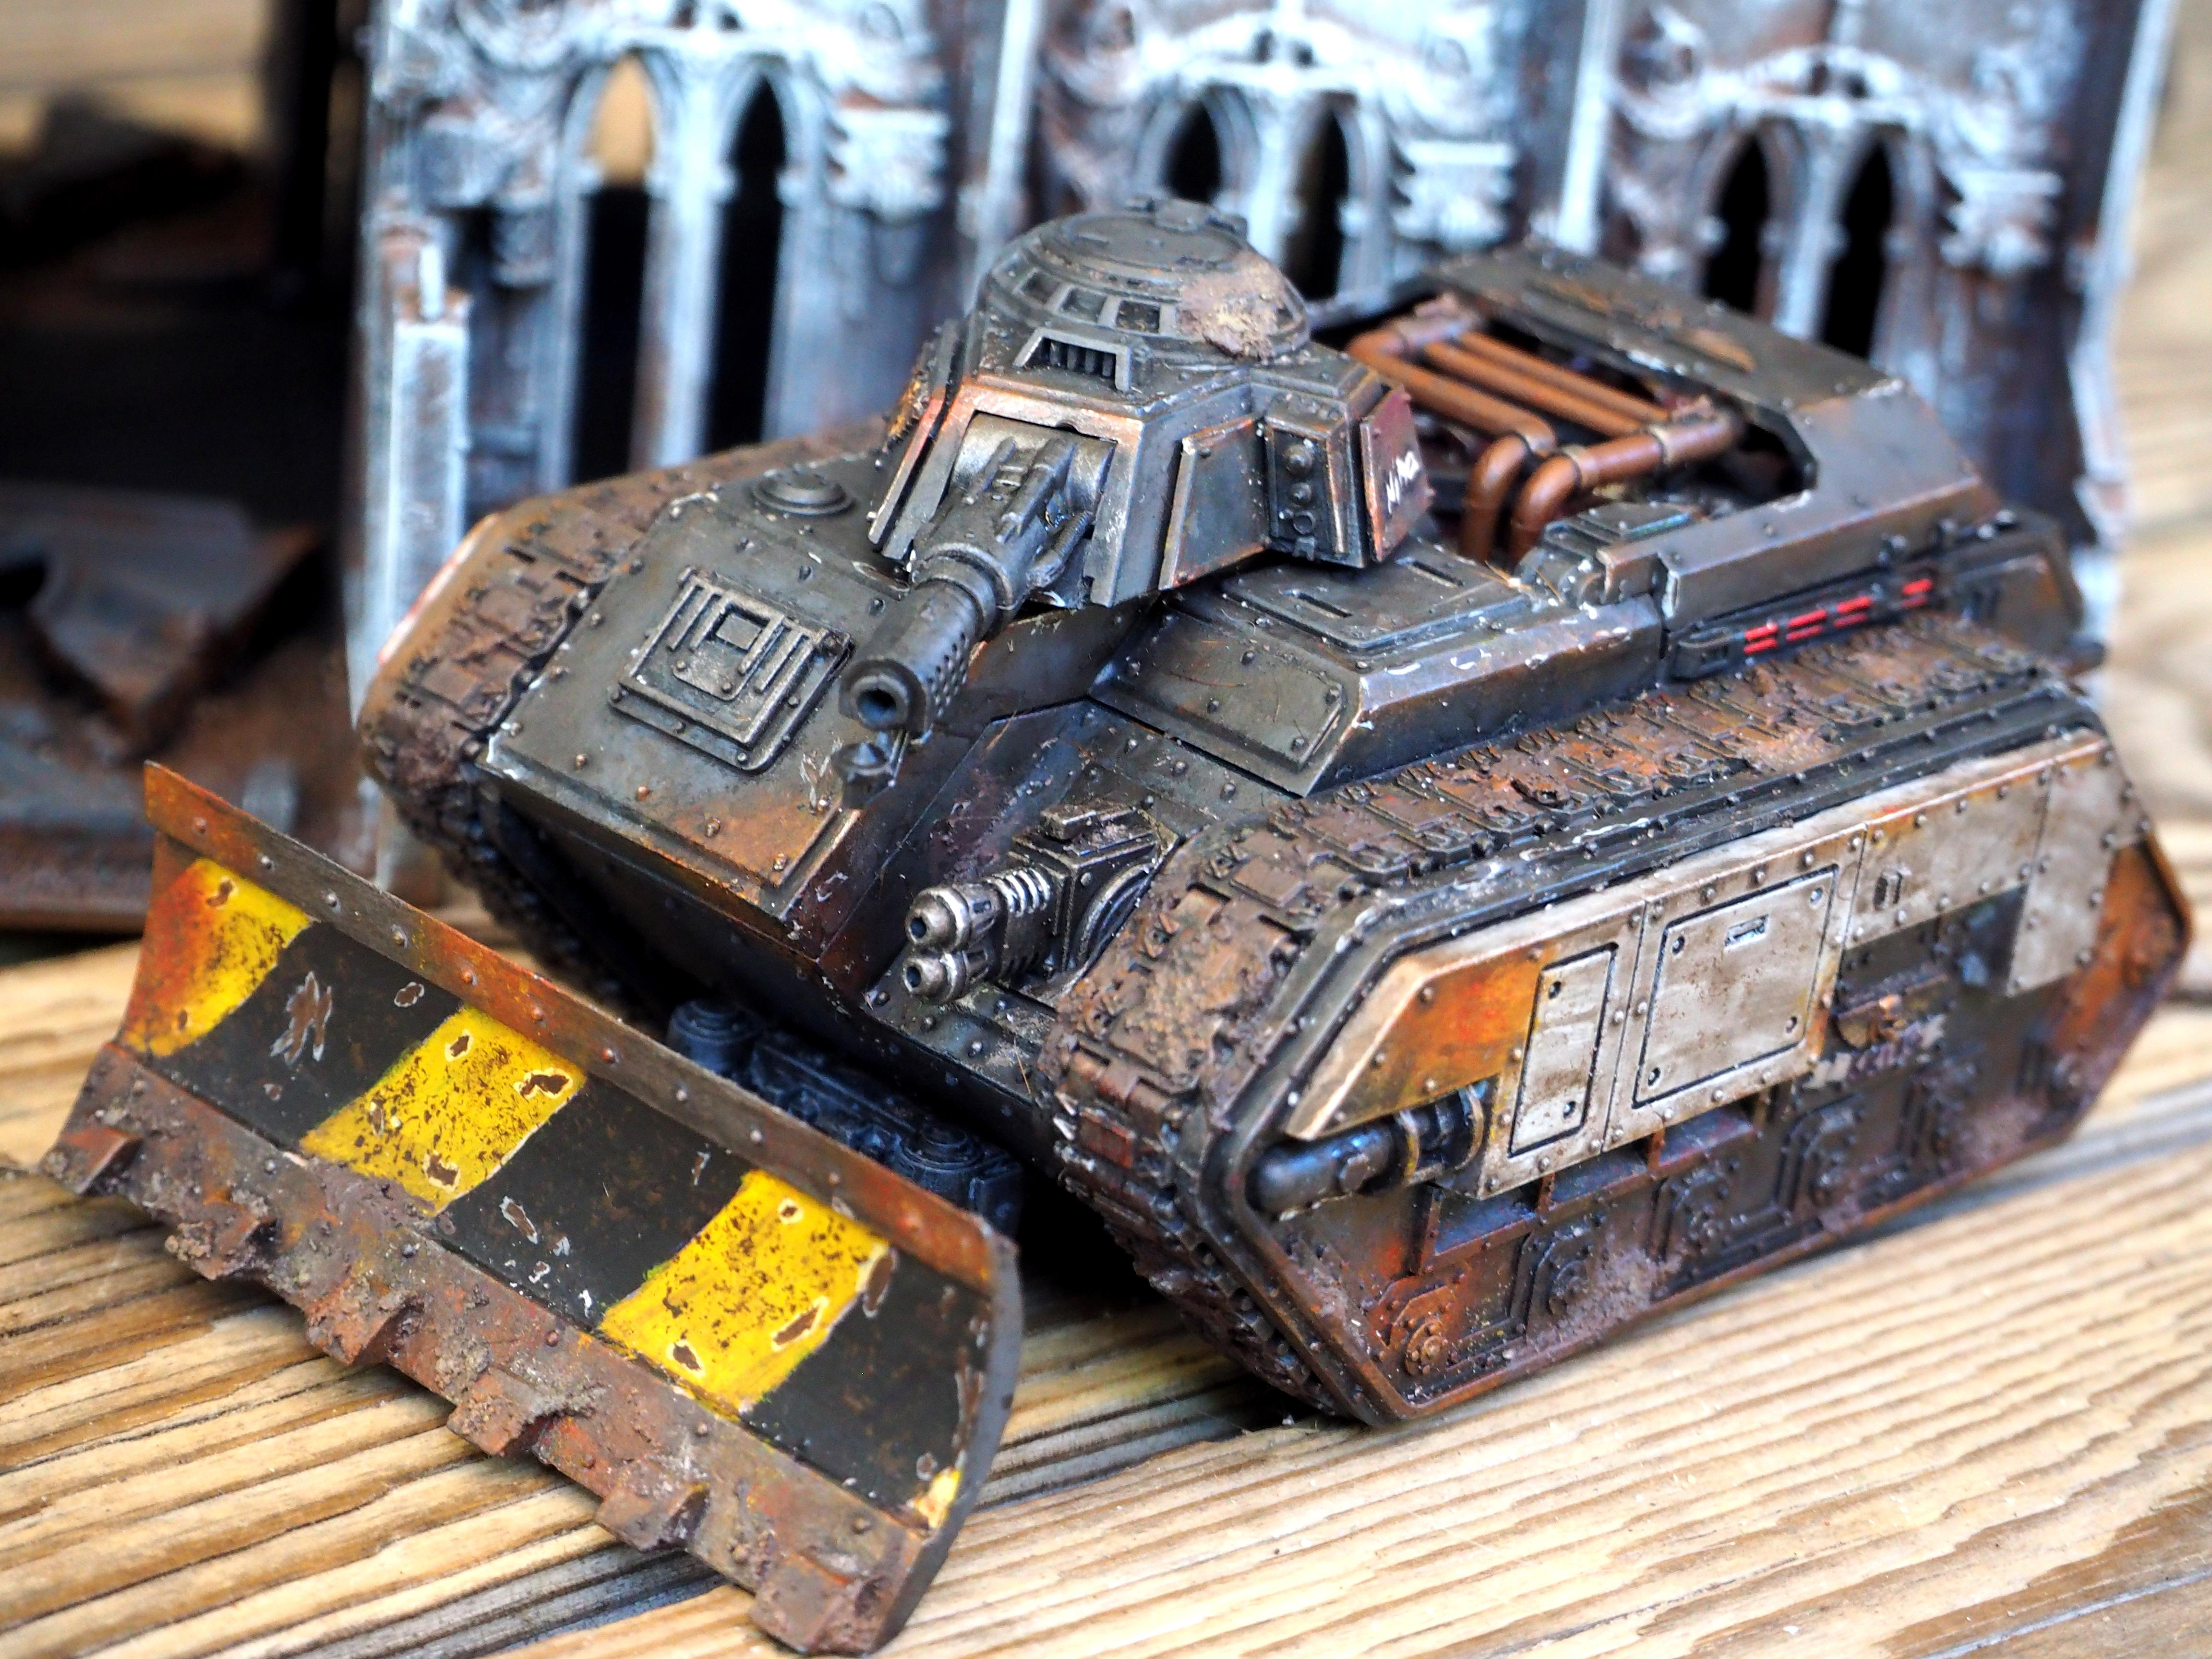 Astra Militarum, Death, Death Korps of Krieg, Hell Hound, Imperial Guard, Korps, Rusty, Tank, Warhammer 40,000, Weathered